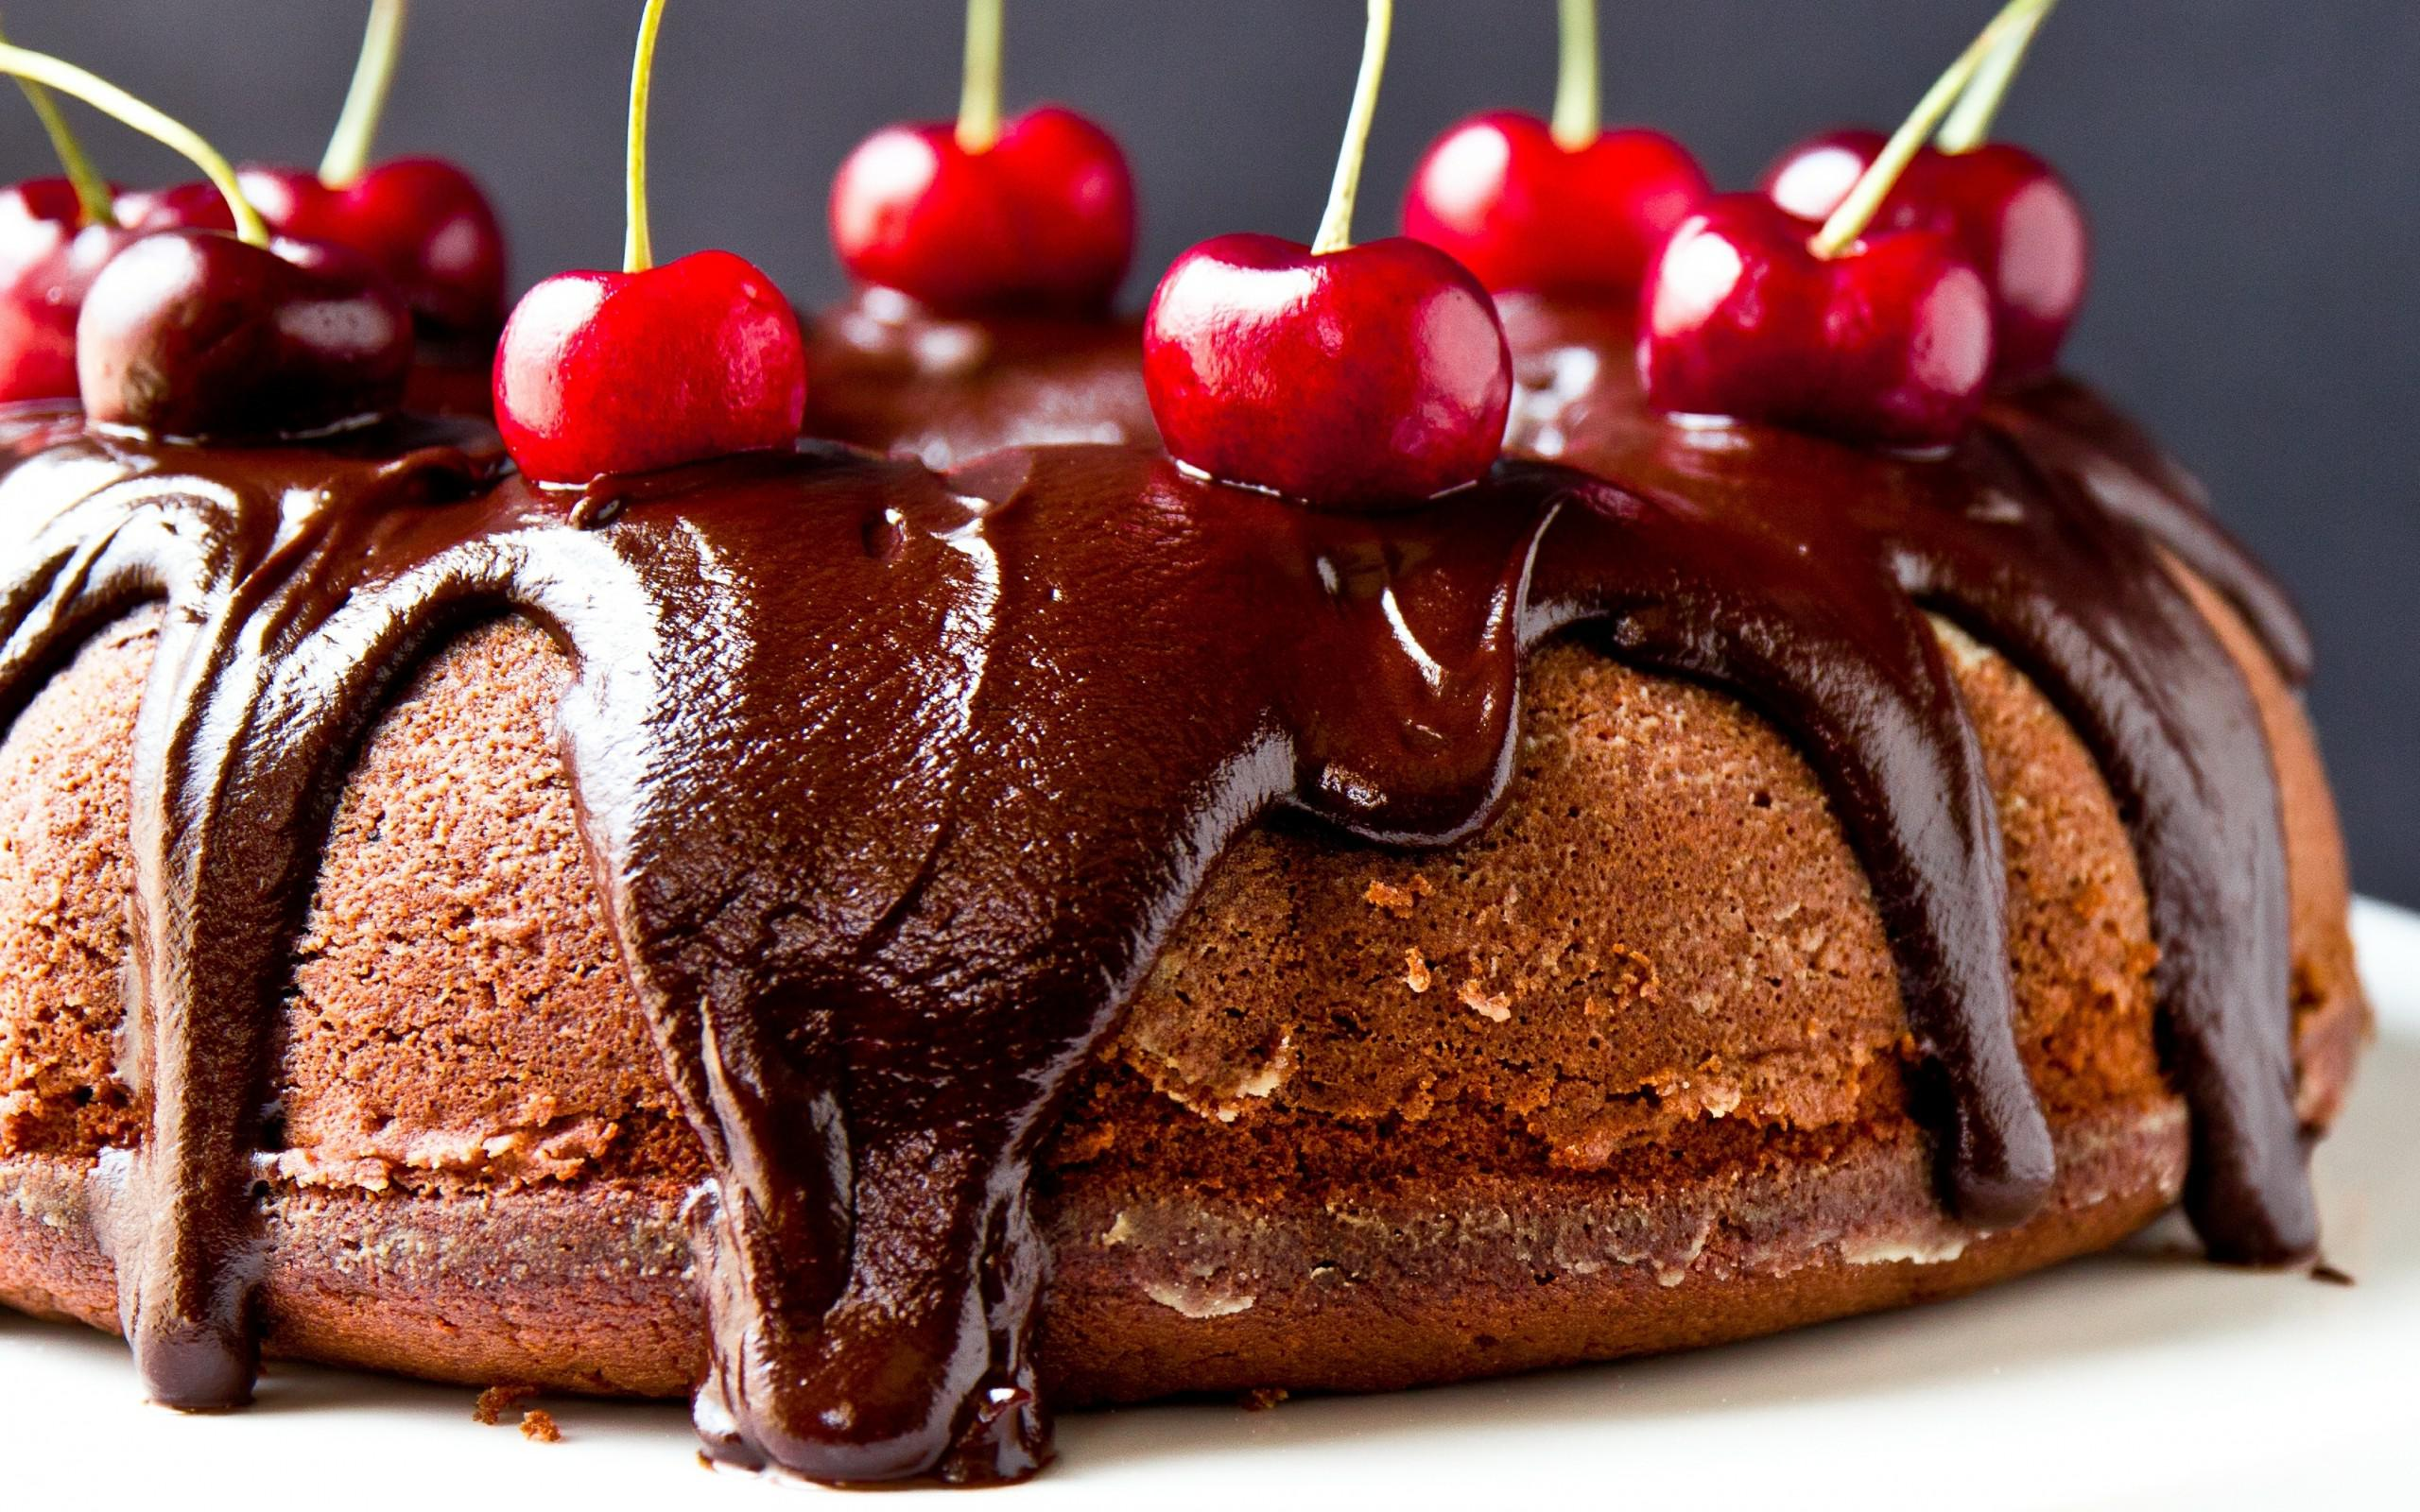 Chocolate Cake Images In Hd : Pastries wallpaper 1600x1200 #67054